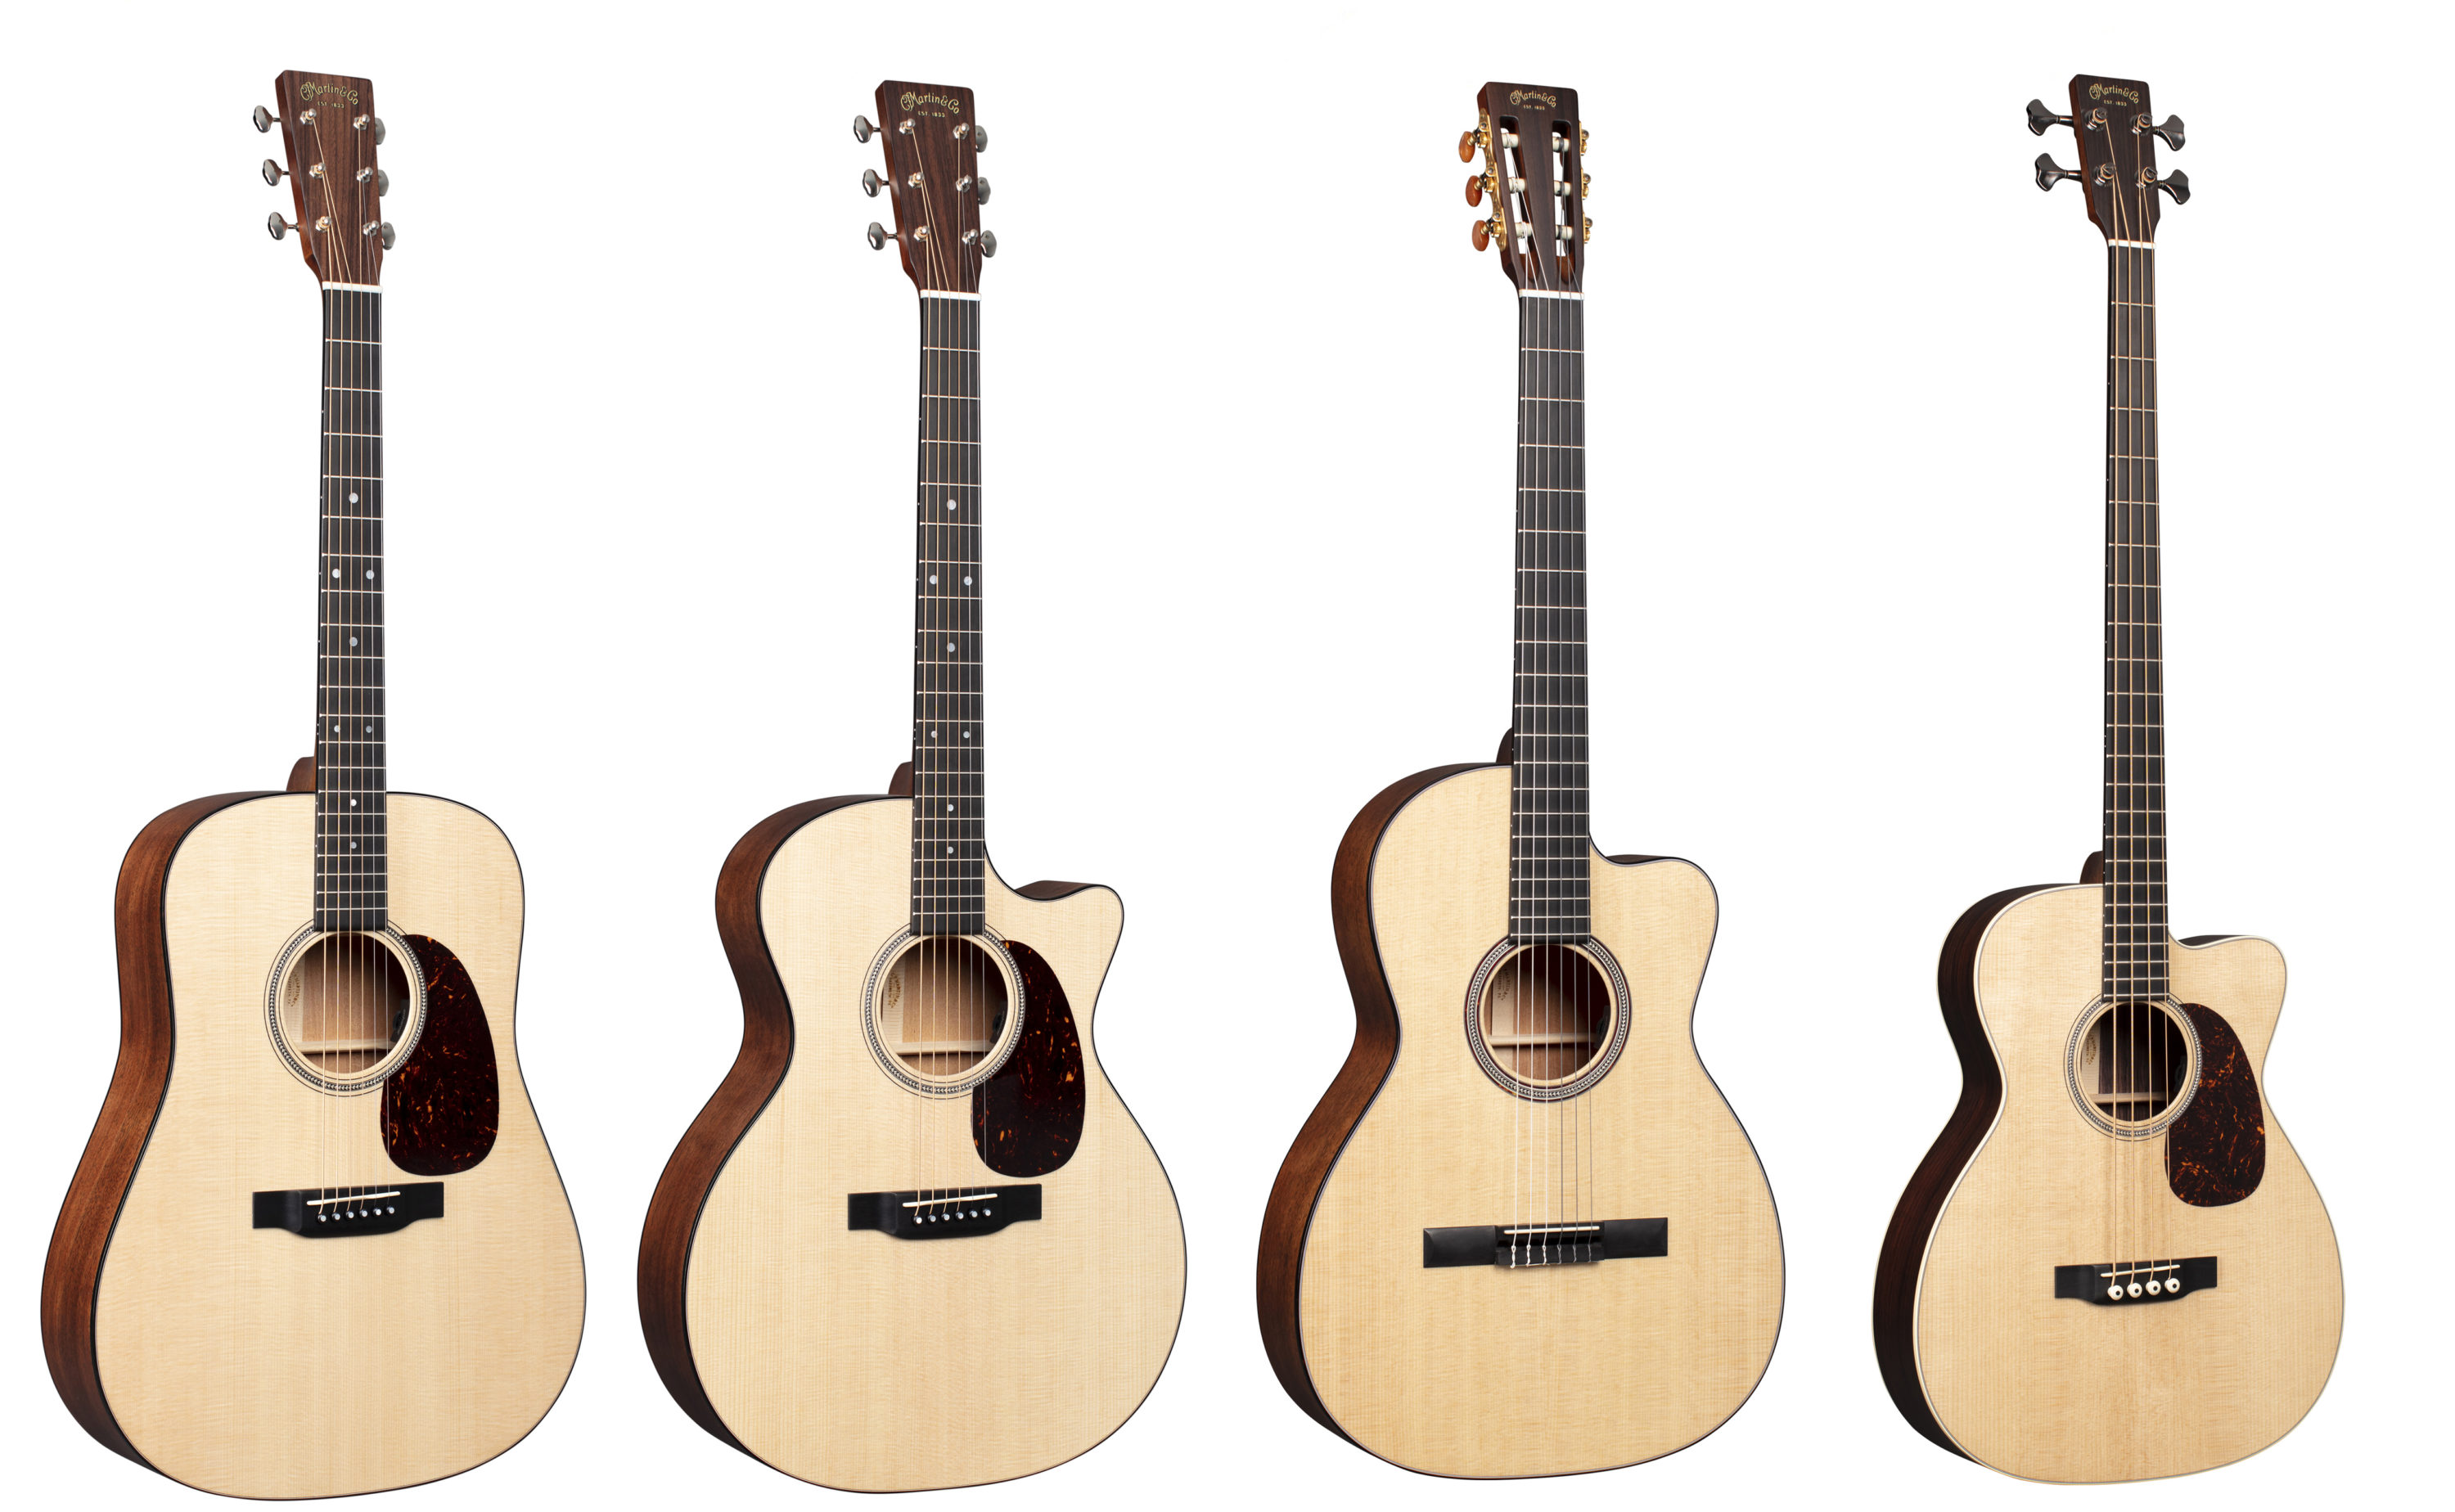 Winter NAMM Martins 16 Series